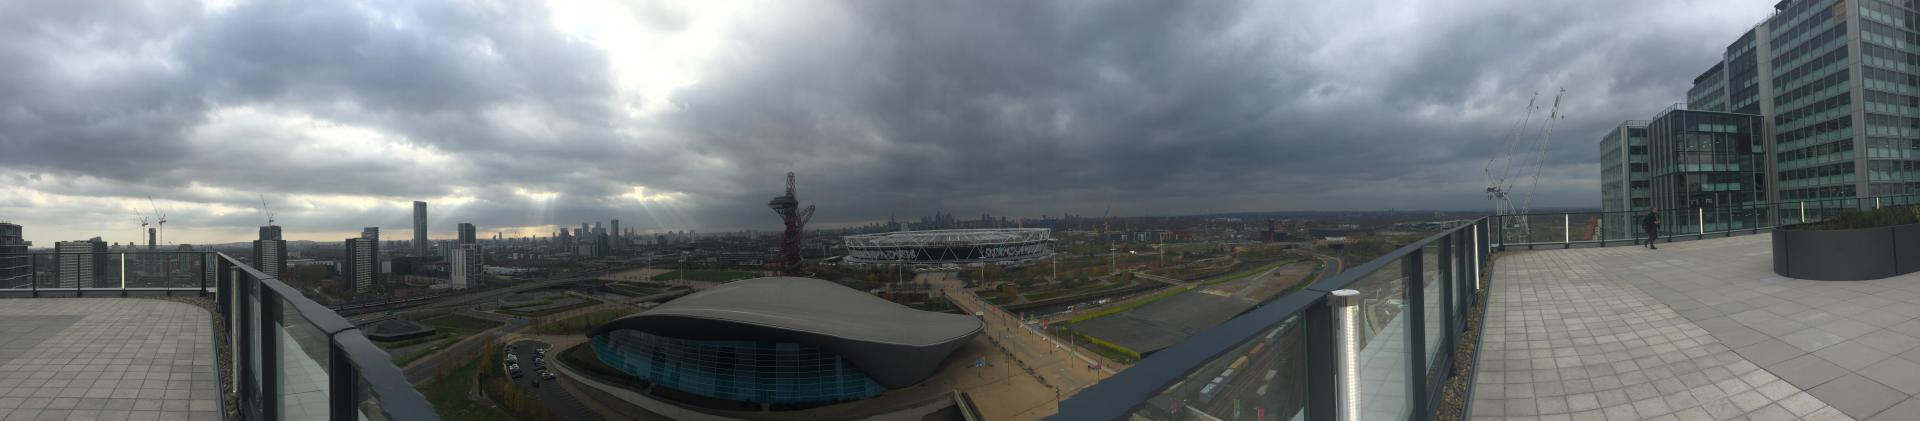 Stratford Rooftop Panorama Endeavour Square